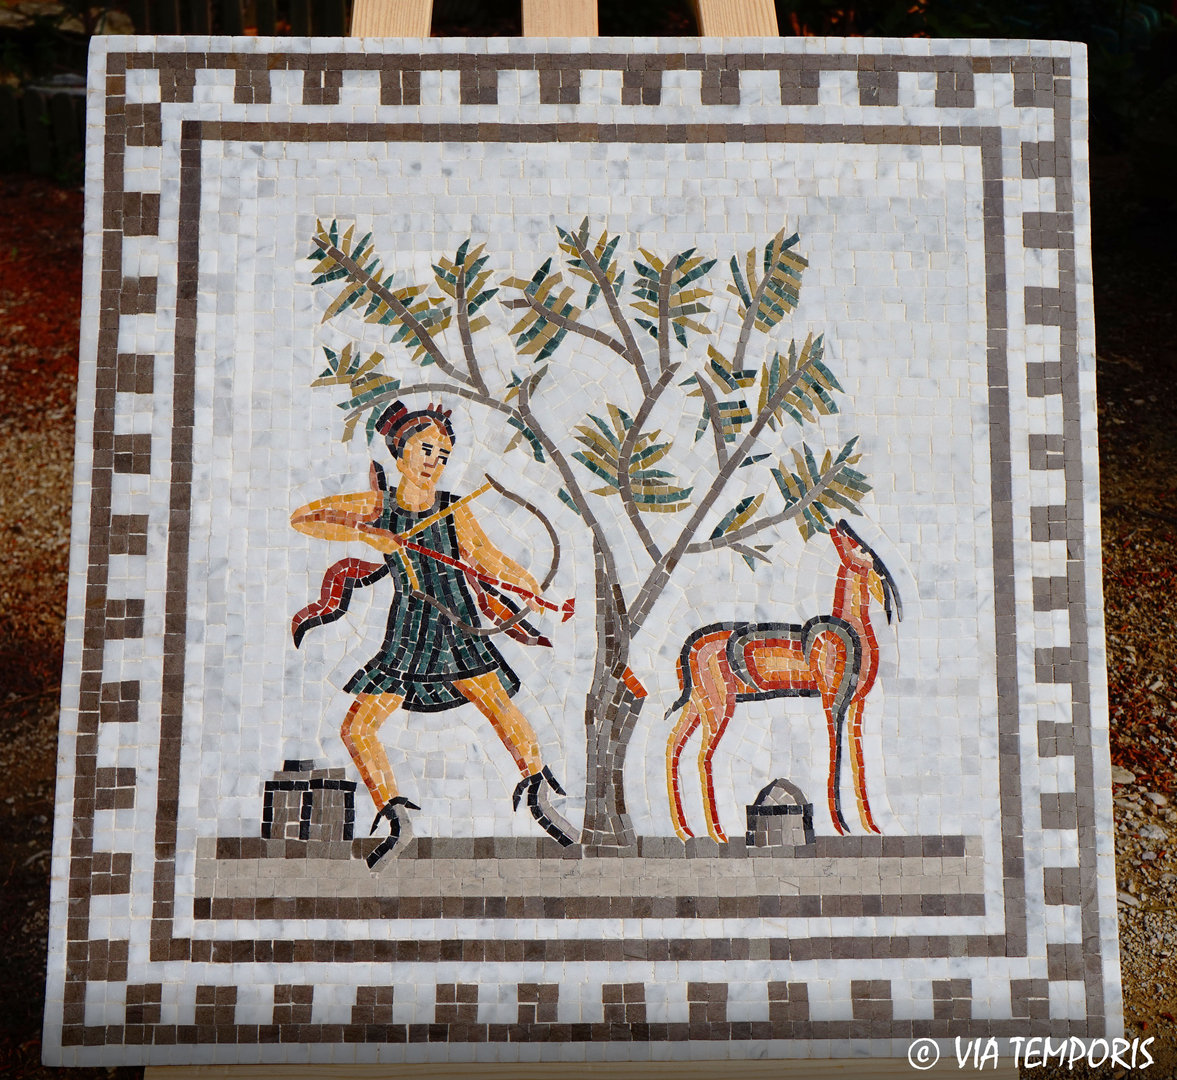 ROMAN MOSAIC WITH DIANA HUNTRESS - BARDO MUSEUM - TUNISIA VIA